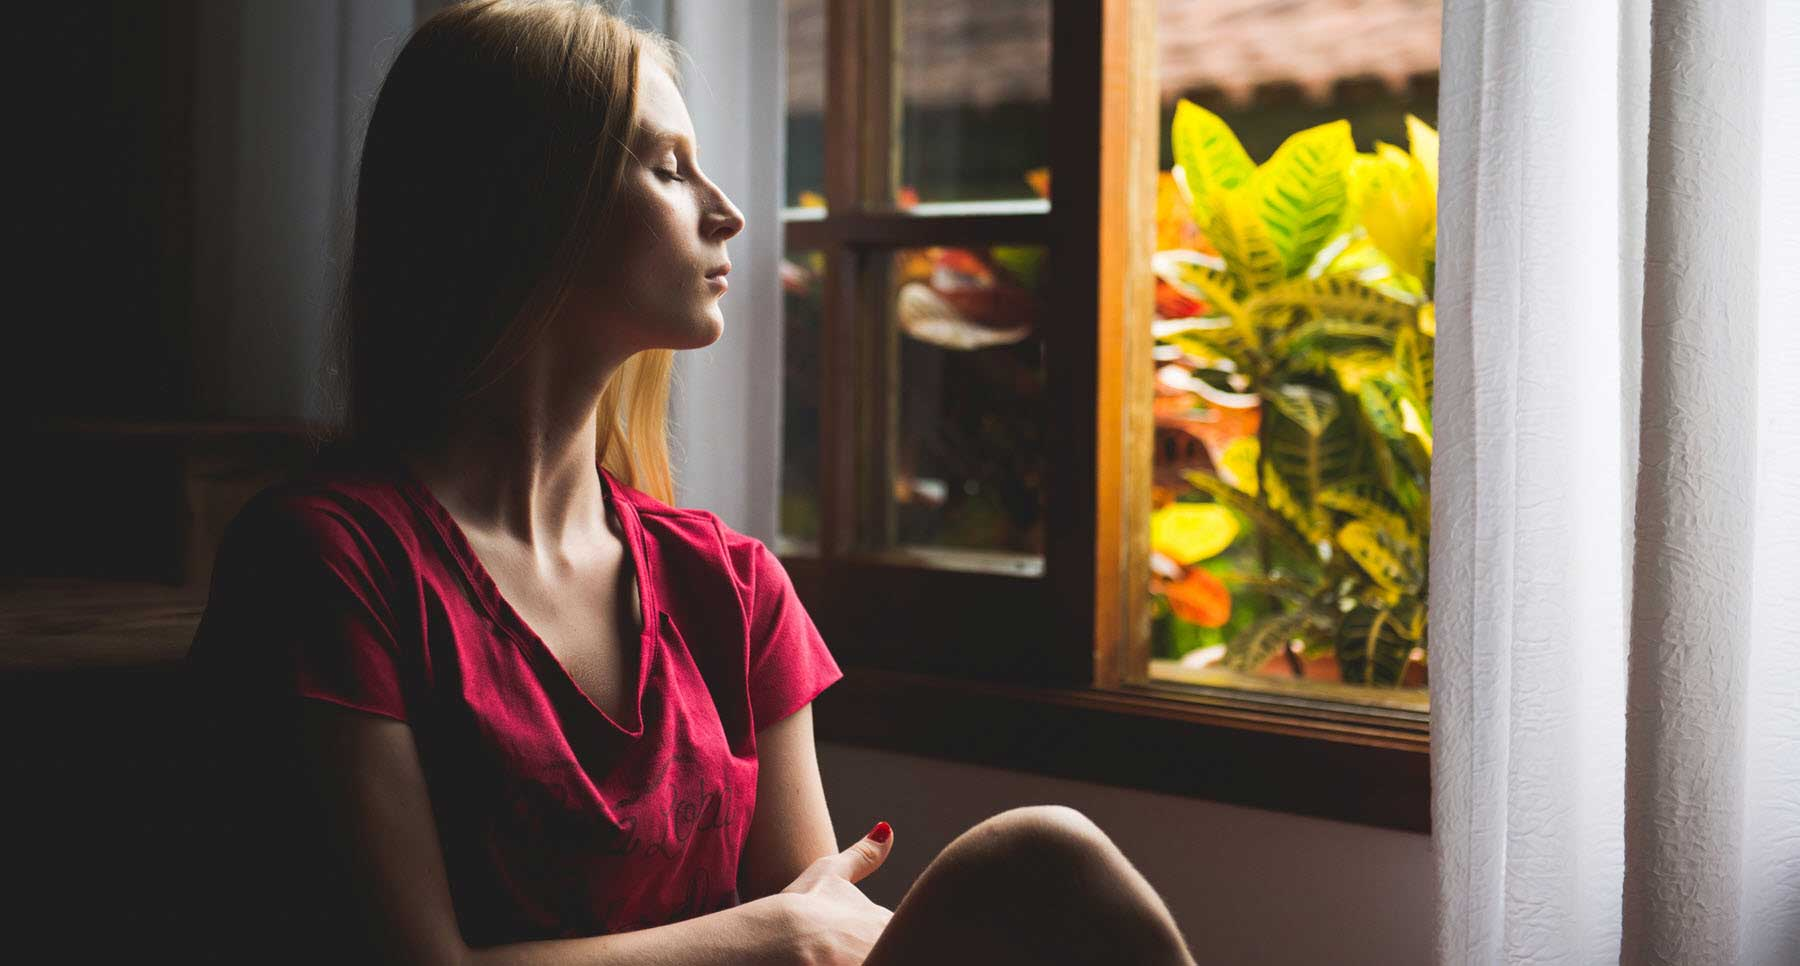 woman-looking-out-the-window-reflecting-on-her-shame-and-guilt